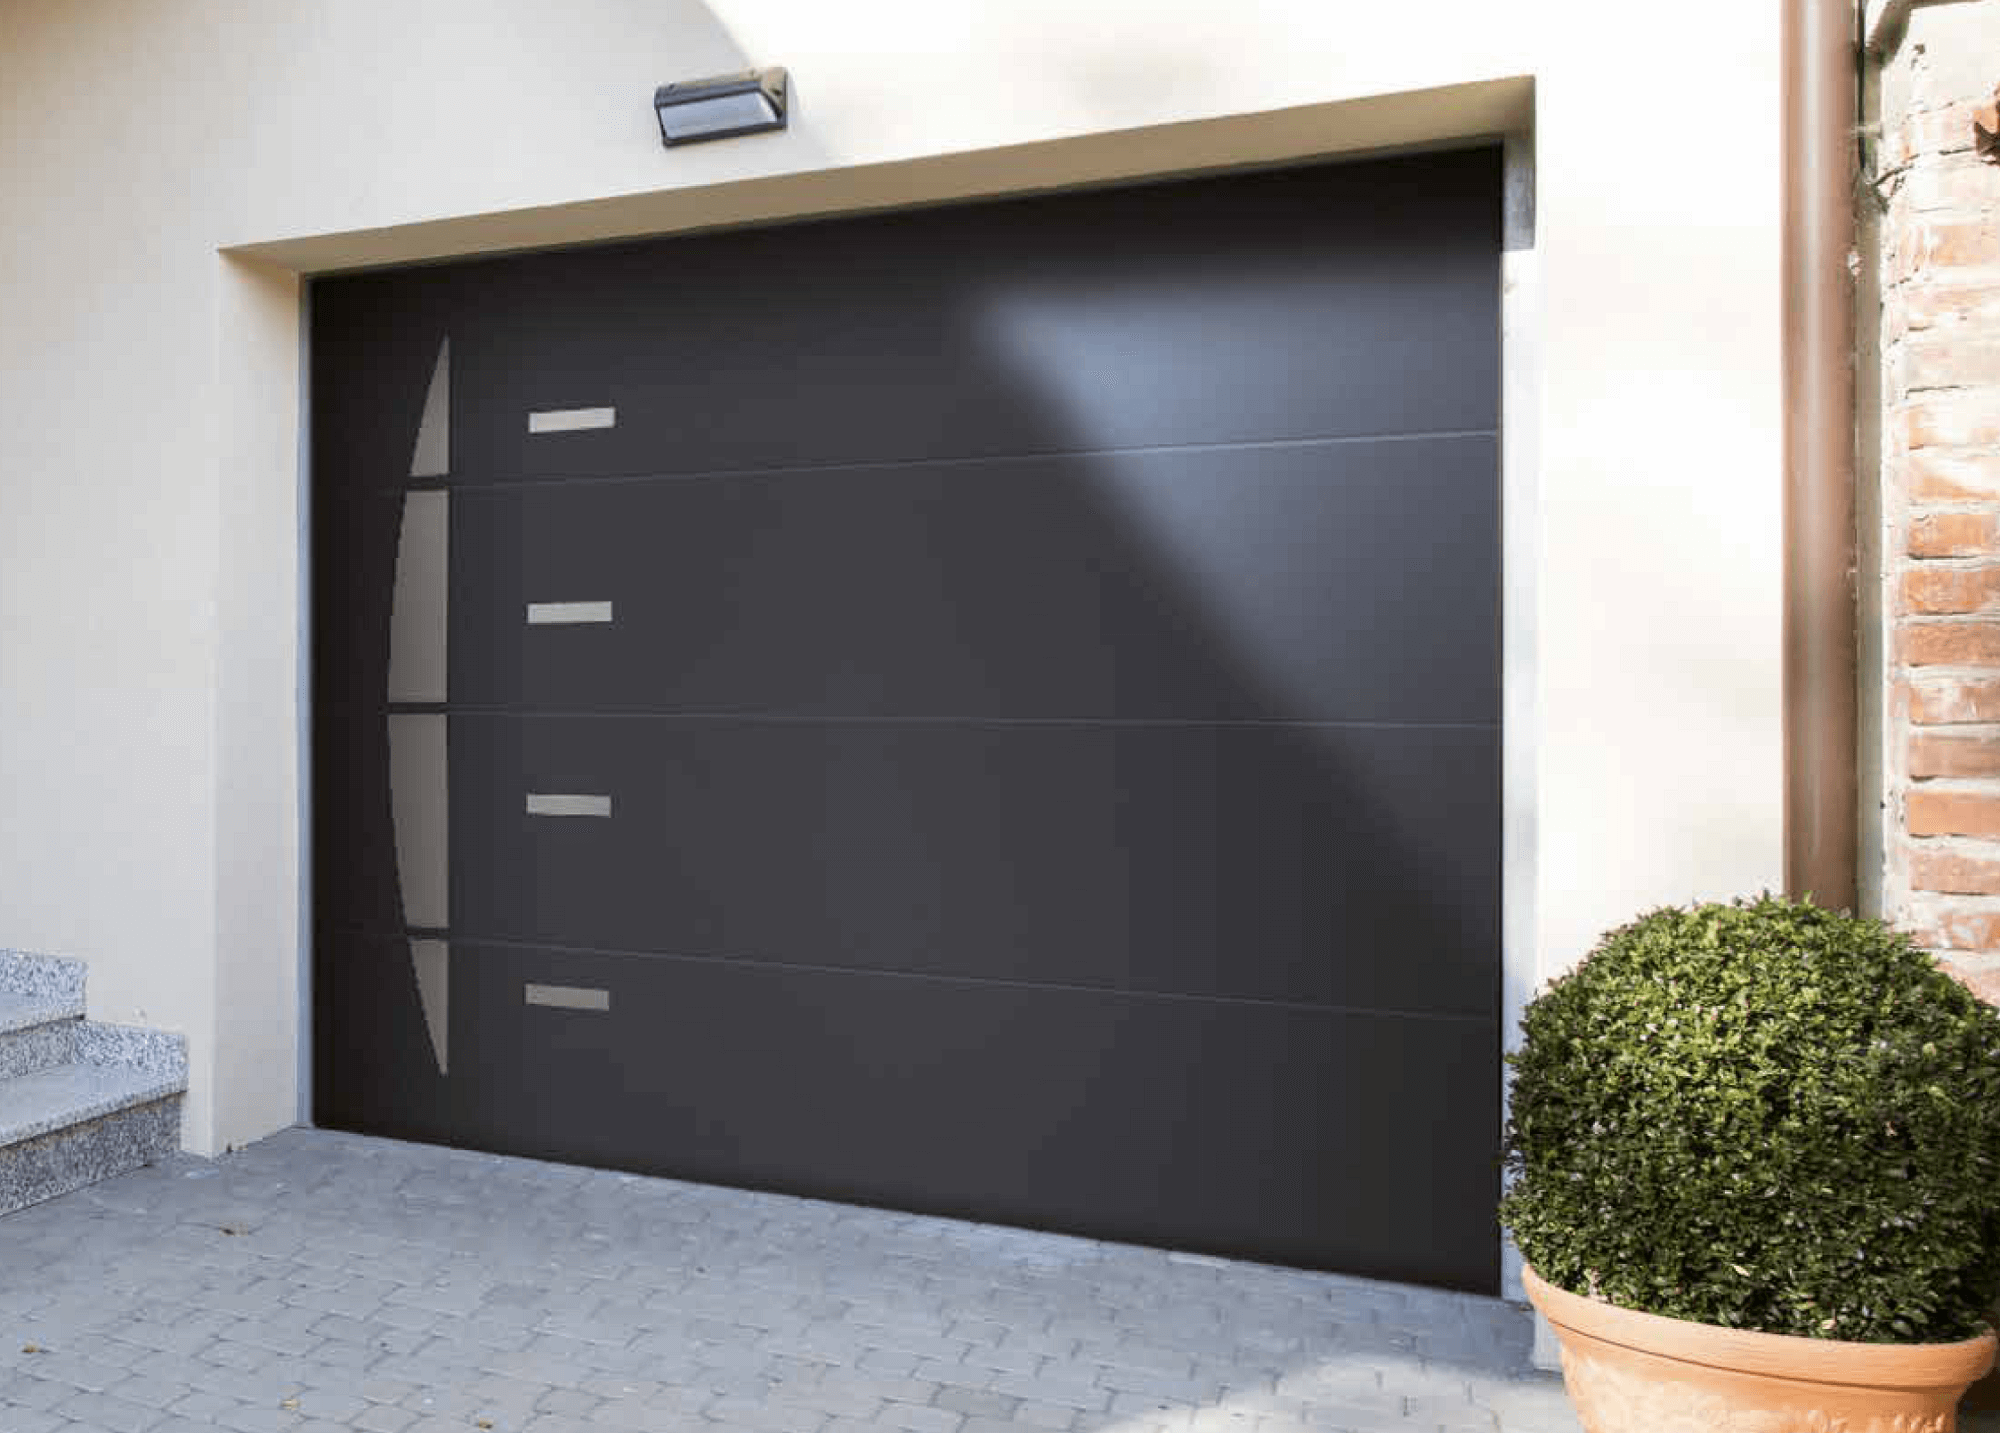 Porte de garage motoris e portes de garage sur mesure for Porte de garage 2 battants sur mesure